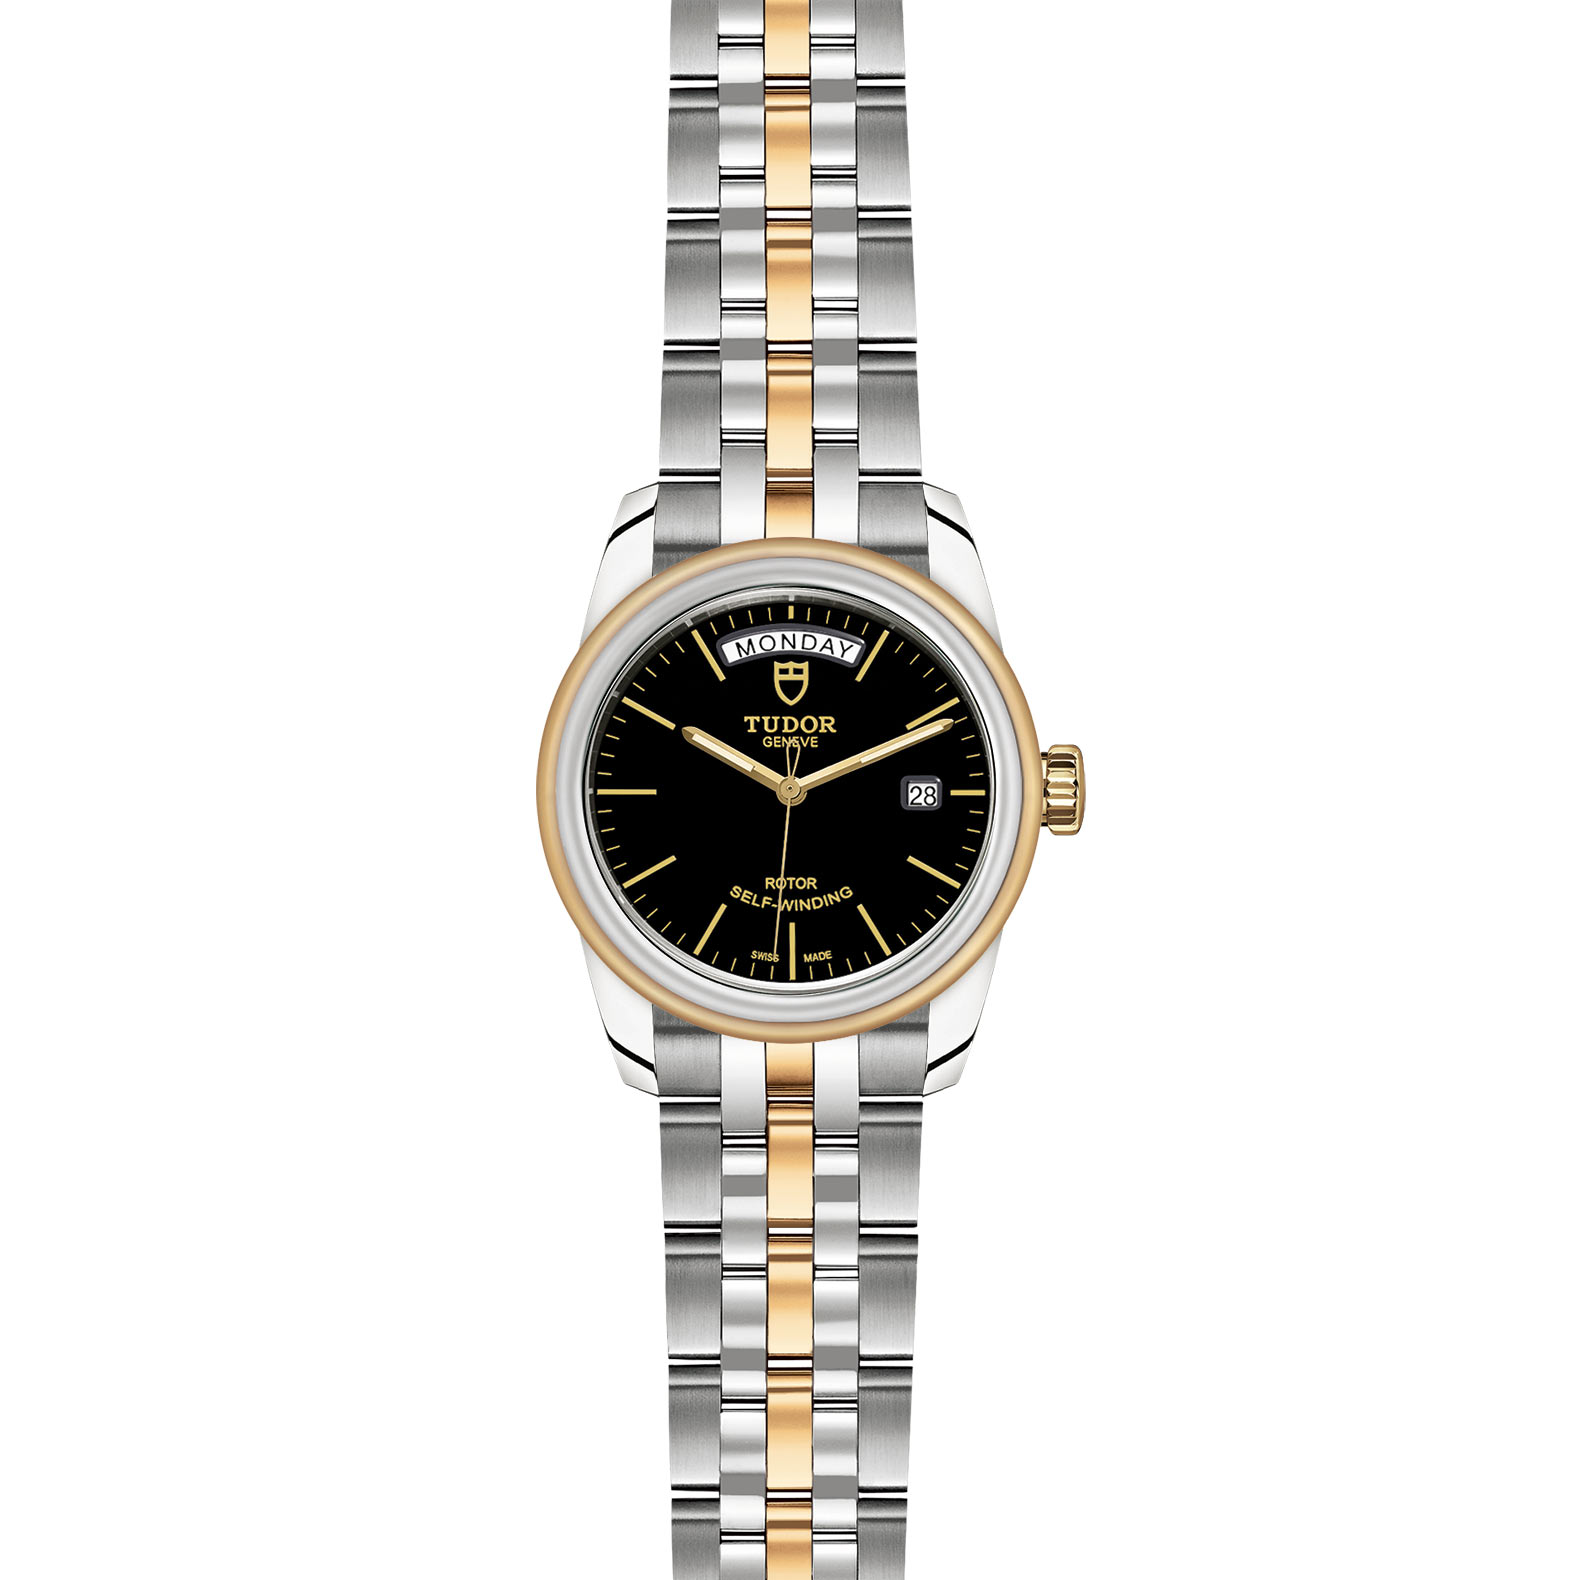 TUDOR Glamour Date Day M56003 0007 Frontfacing